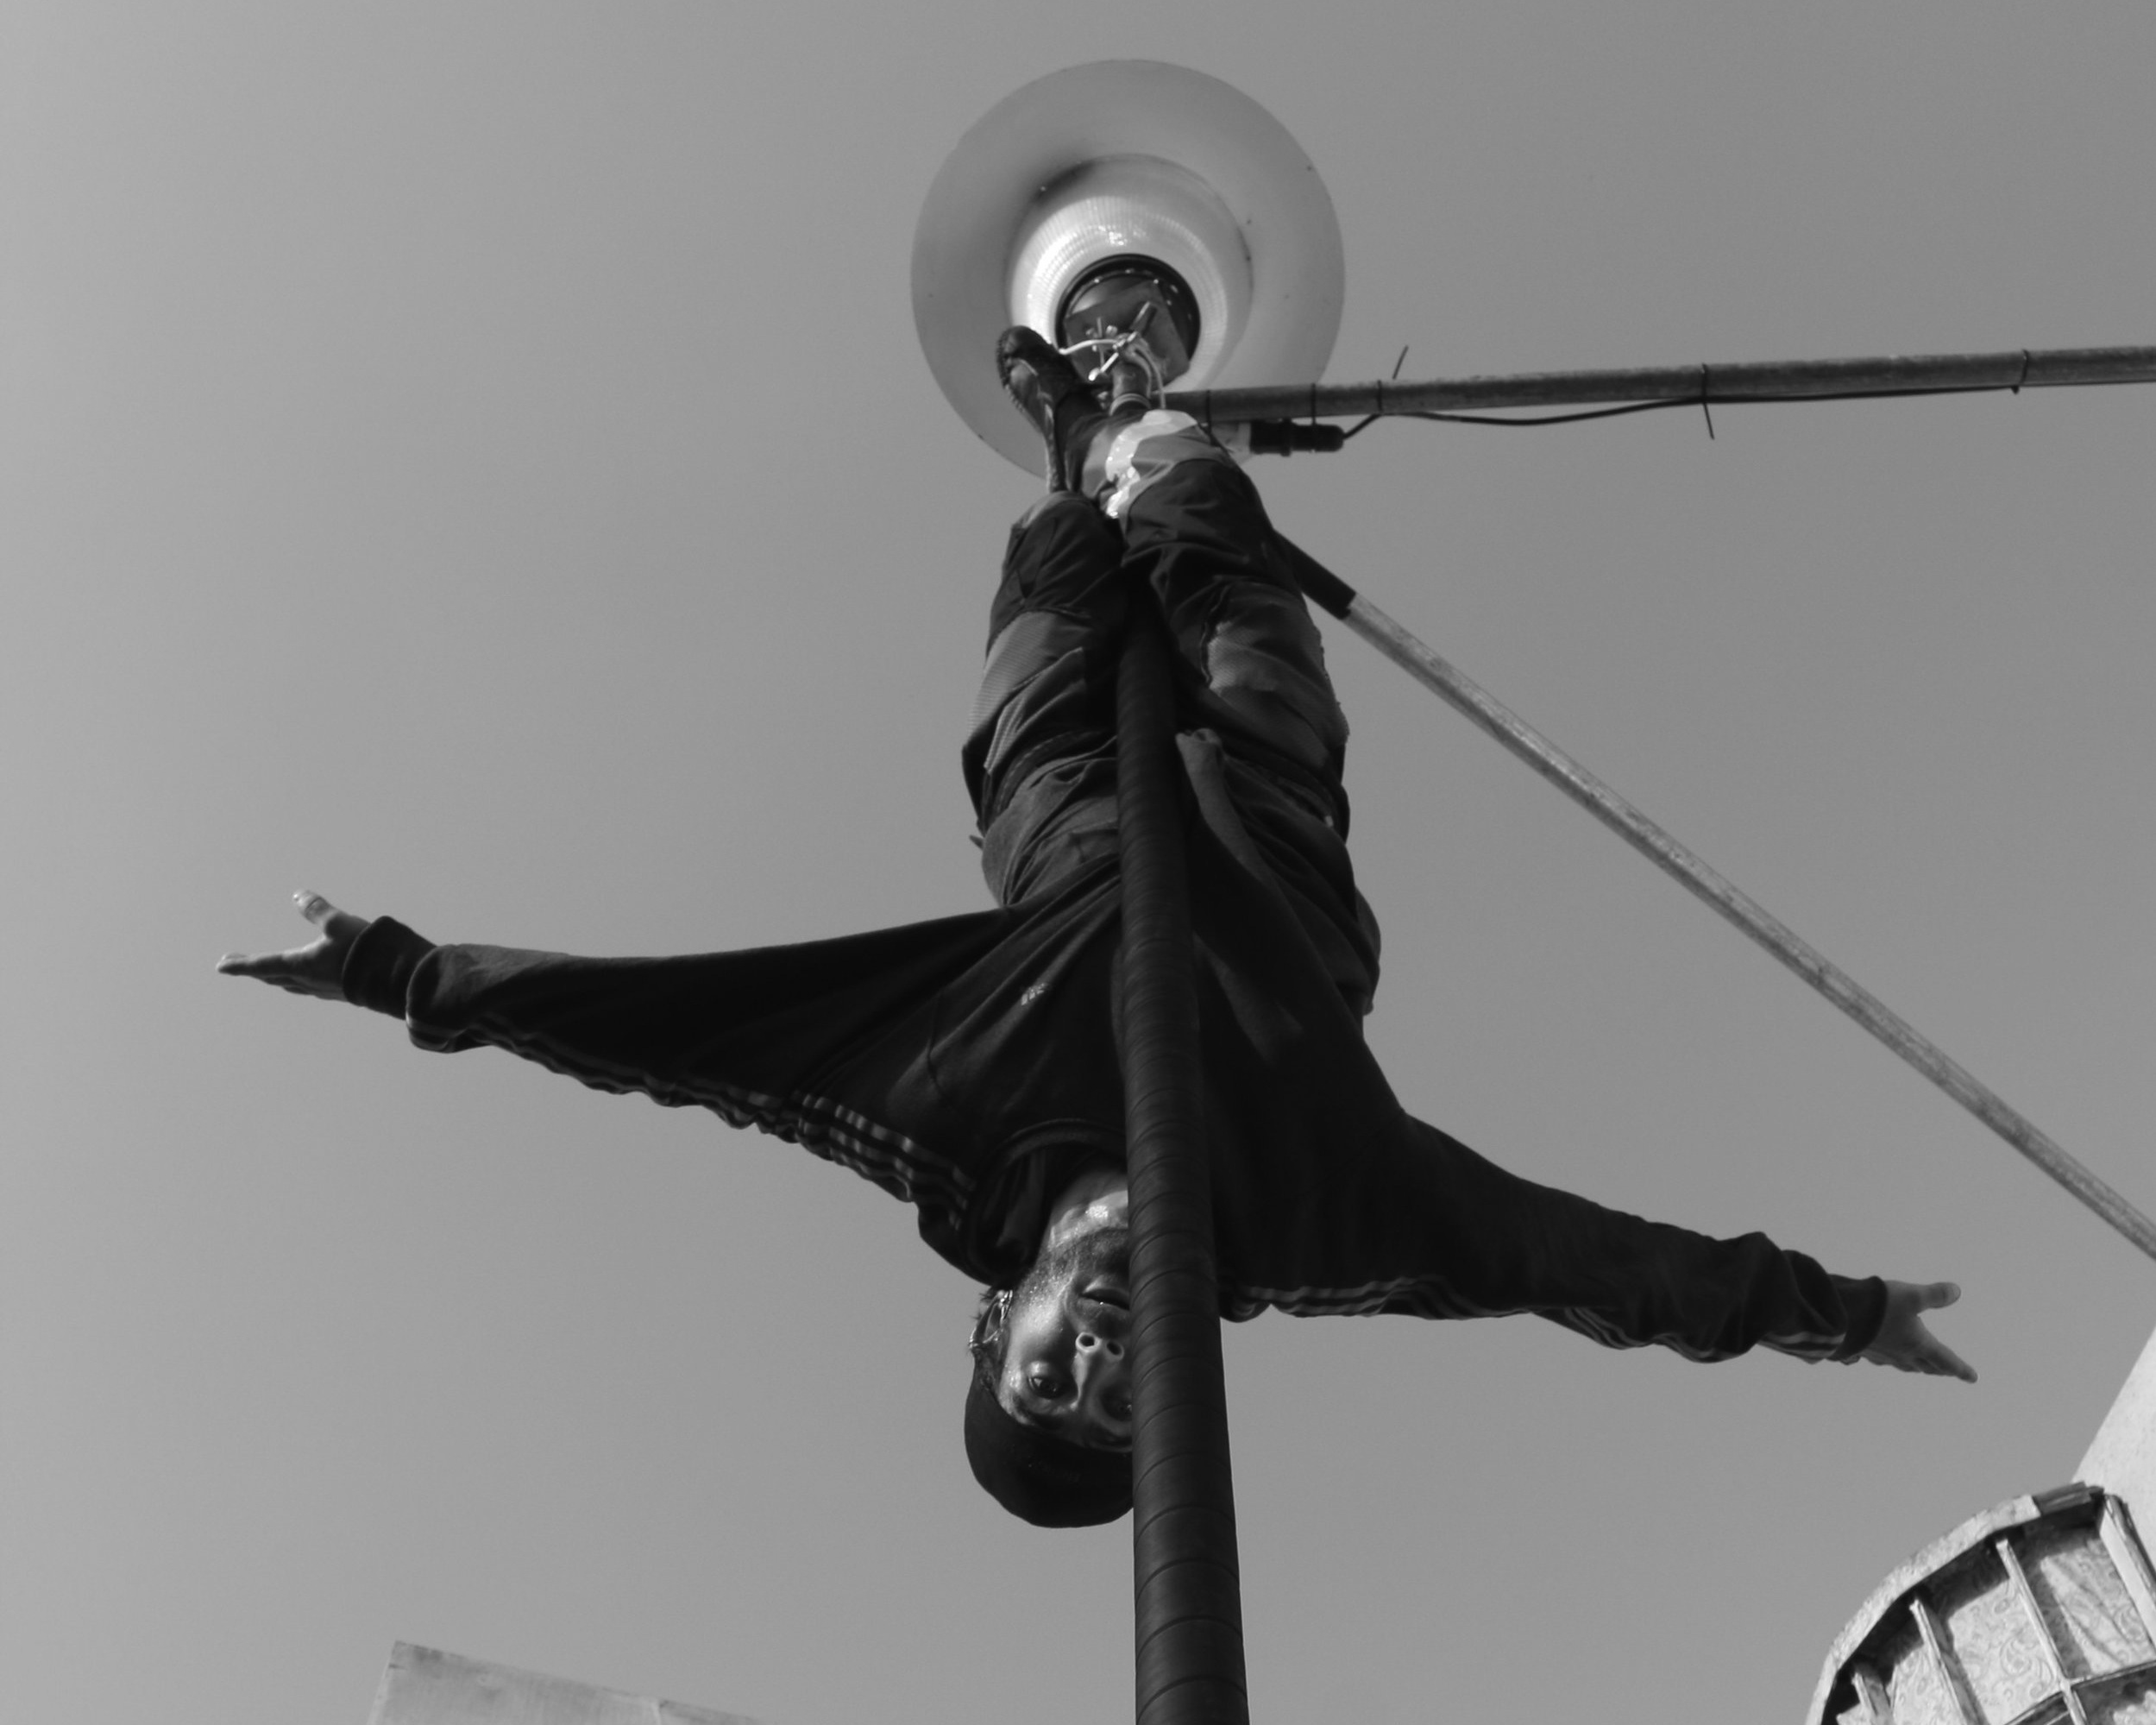 Jake Dumpleton   Circus performer, citizen of the world and always an optimist. Travelled the world from a young age and looks forward to seeing more of it.  Concrete Playgroun d